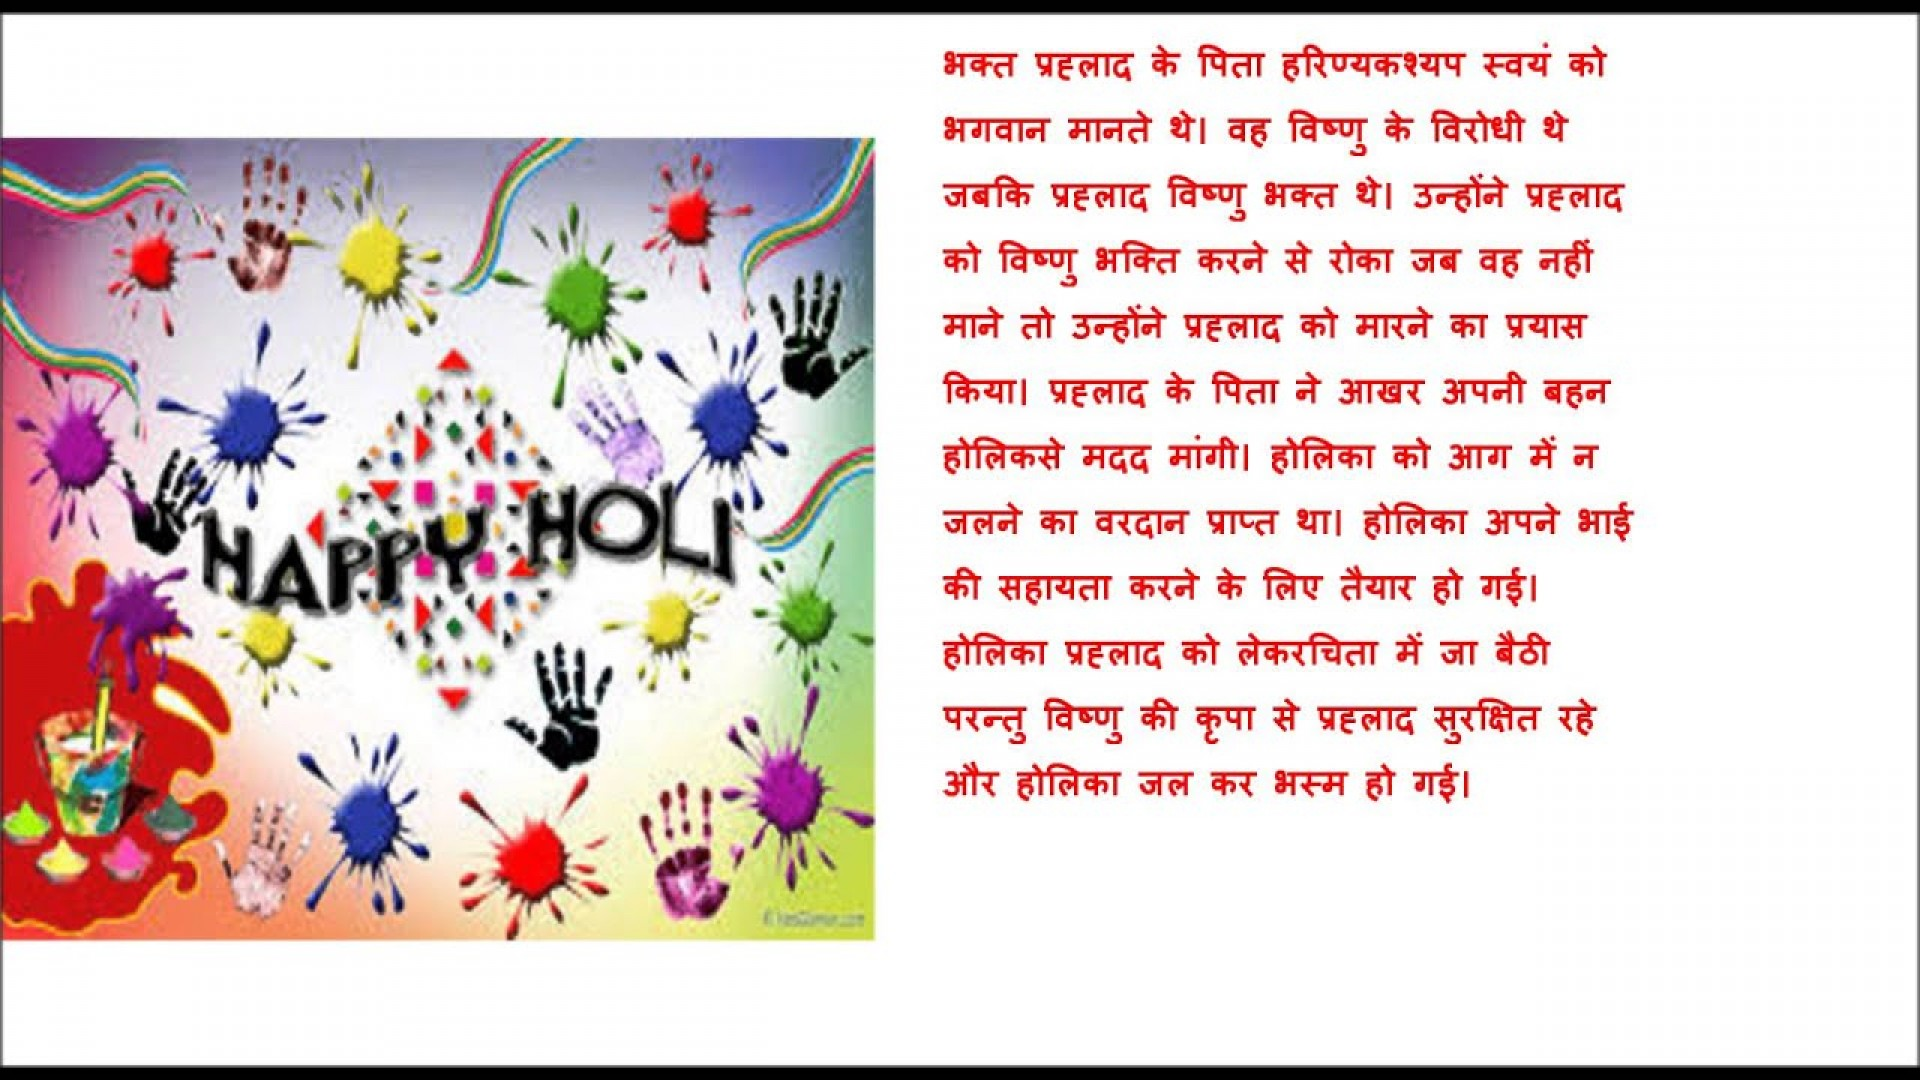 007 Essay Example Holi Festival Top Of Colours In Hindi Punjabi Language For Class 2 1920